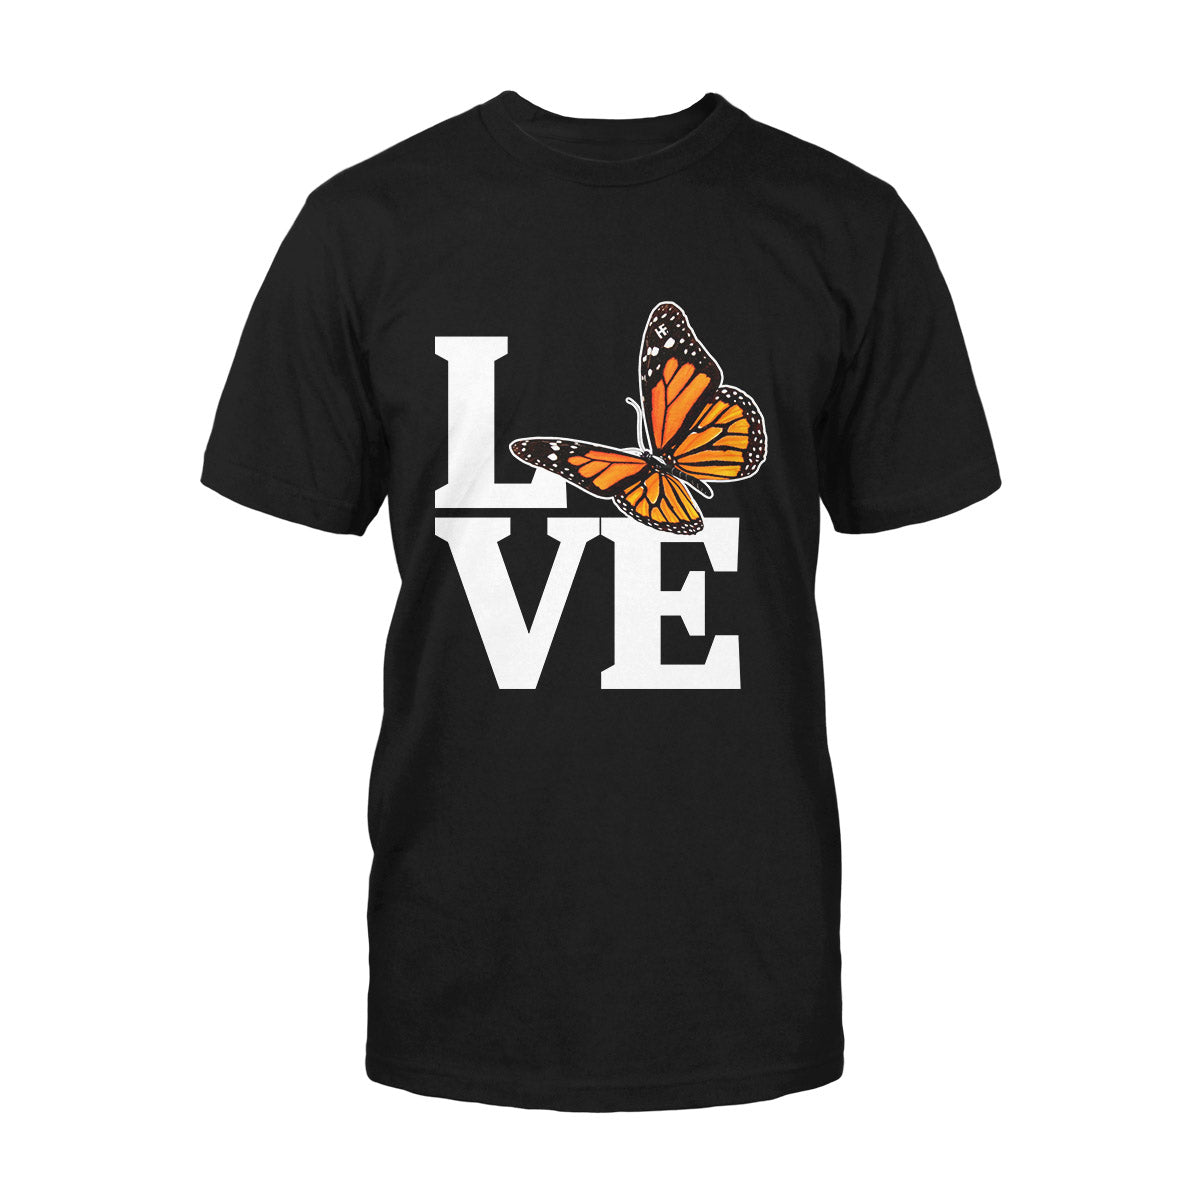 Love Butterfly Monarch Butterfly EZ02 0309 Classic T-shirt - Hyperfavor